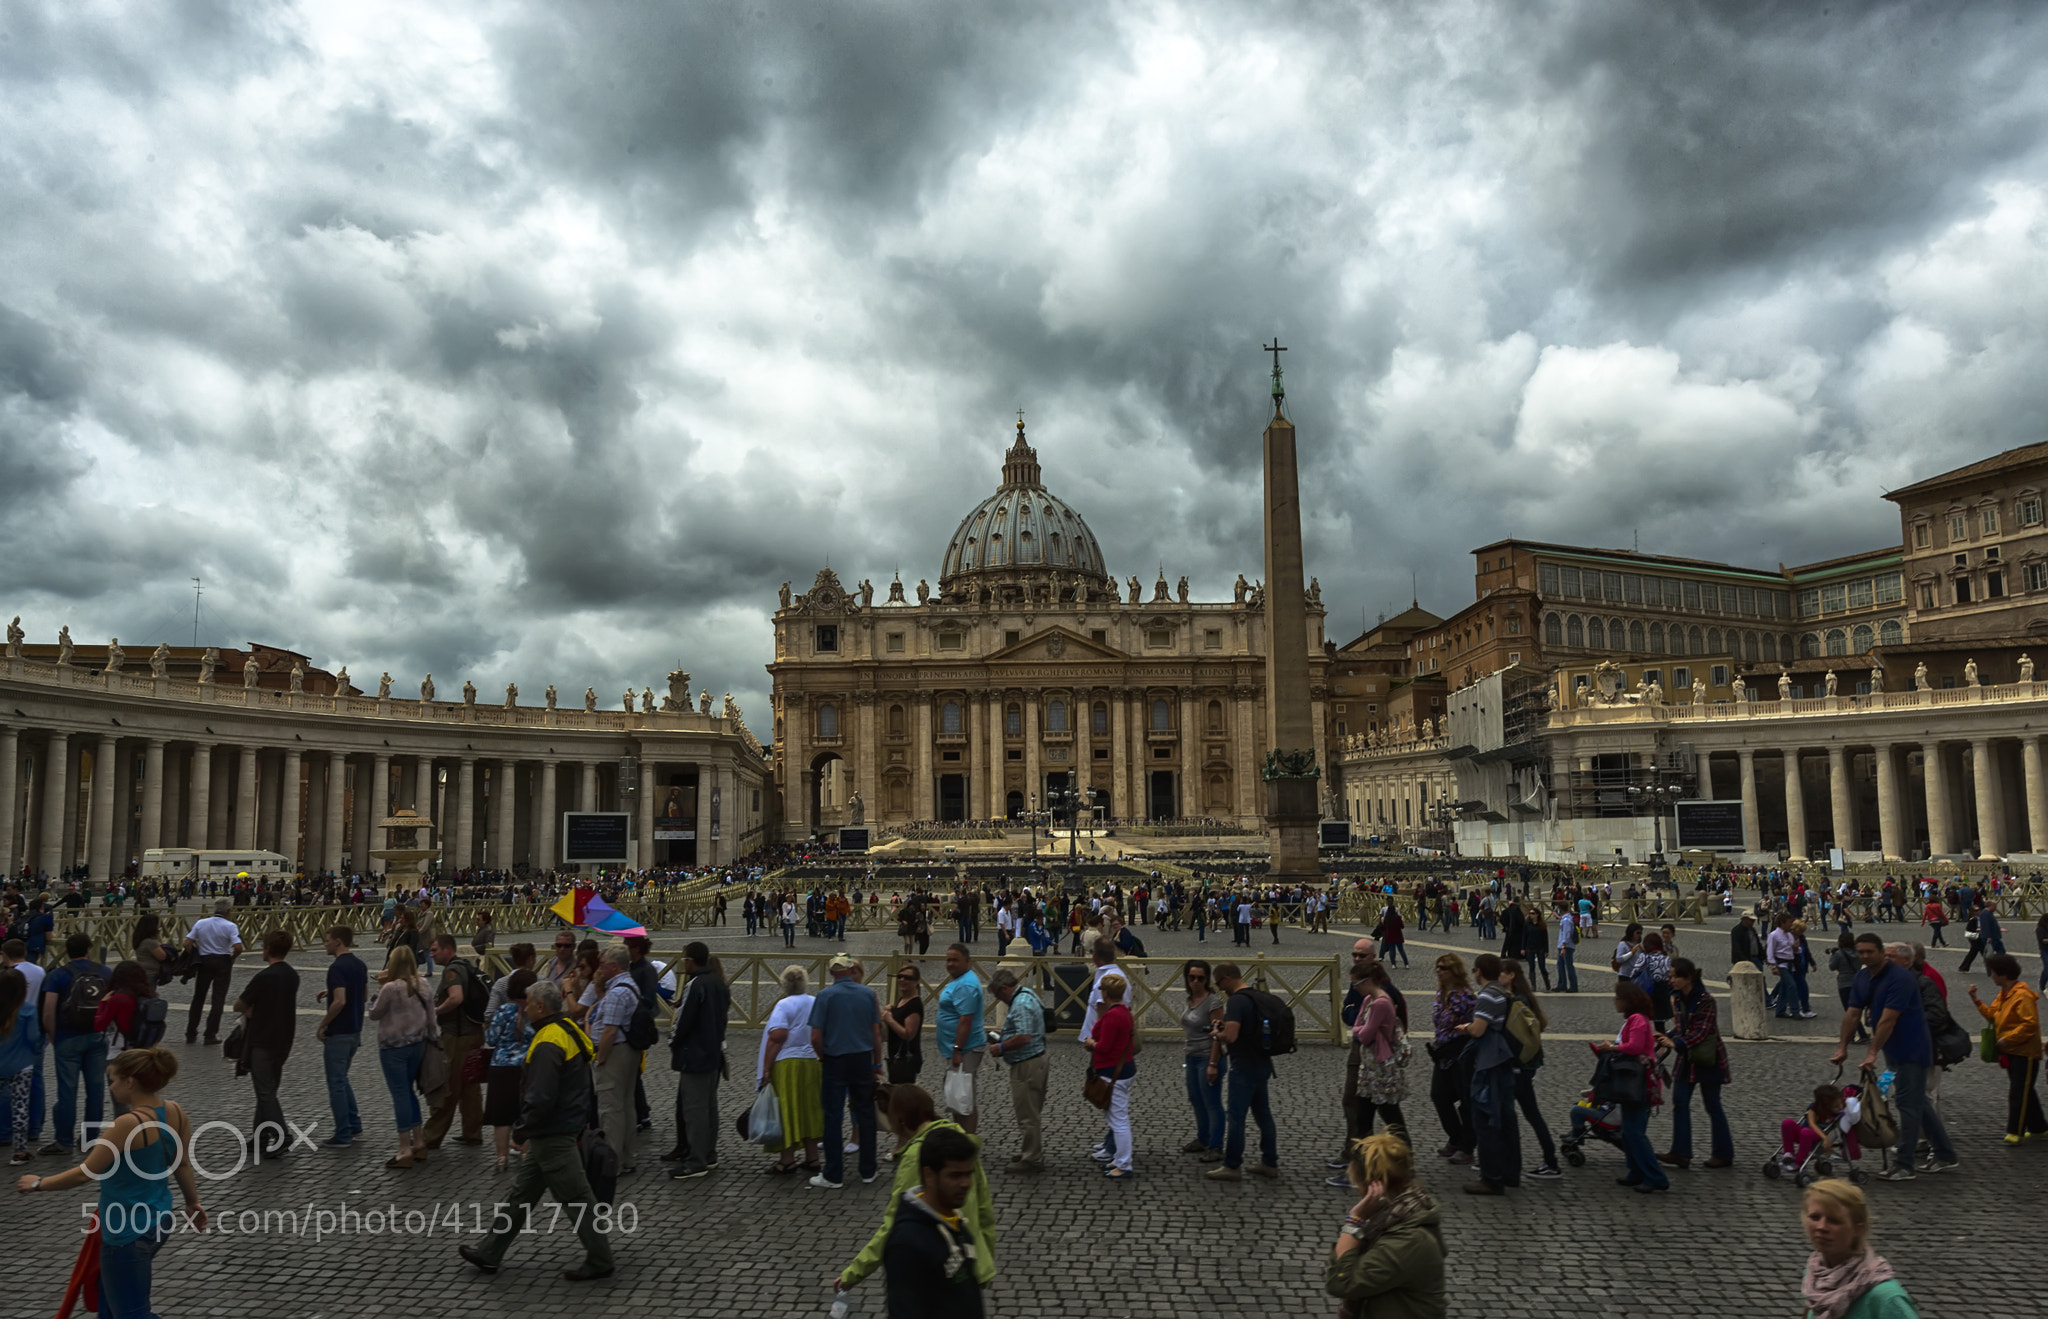 Photograph Vaticano by Jorge Orfão on 500px